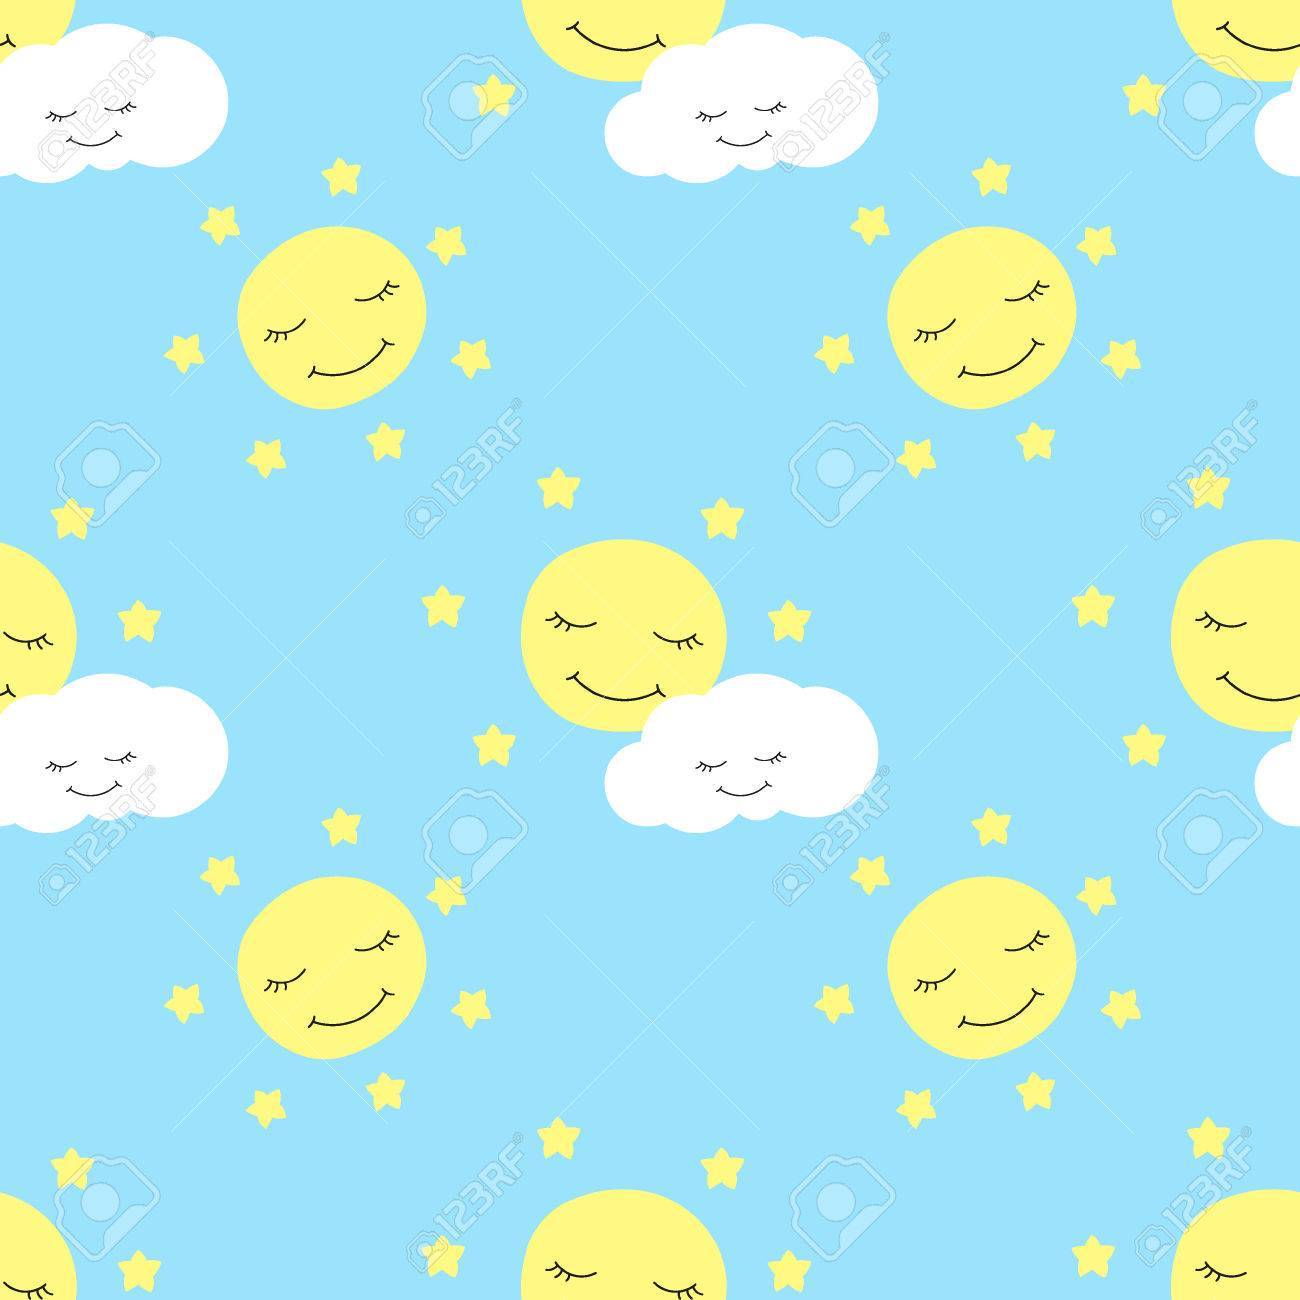 Cute Baby Moon Pattern Vector Seamless Children Print With Eyelash Stars And Clouds